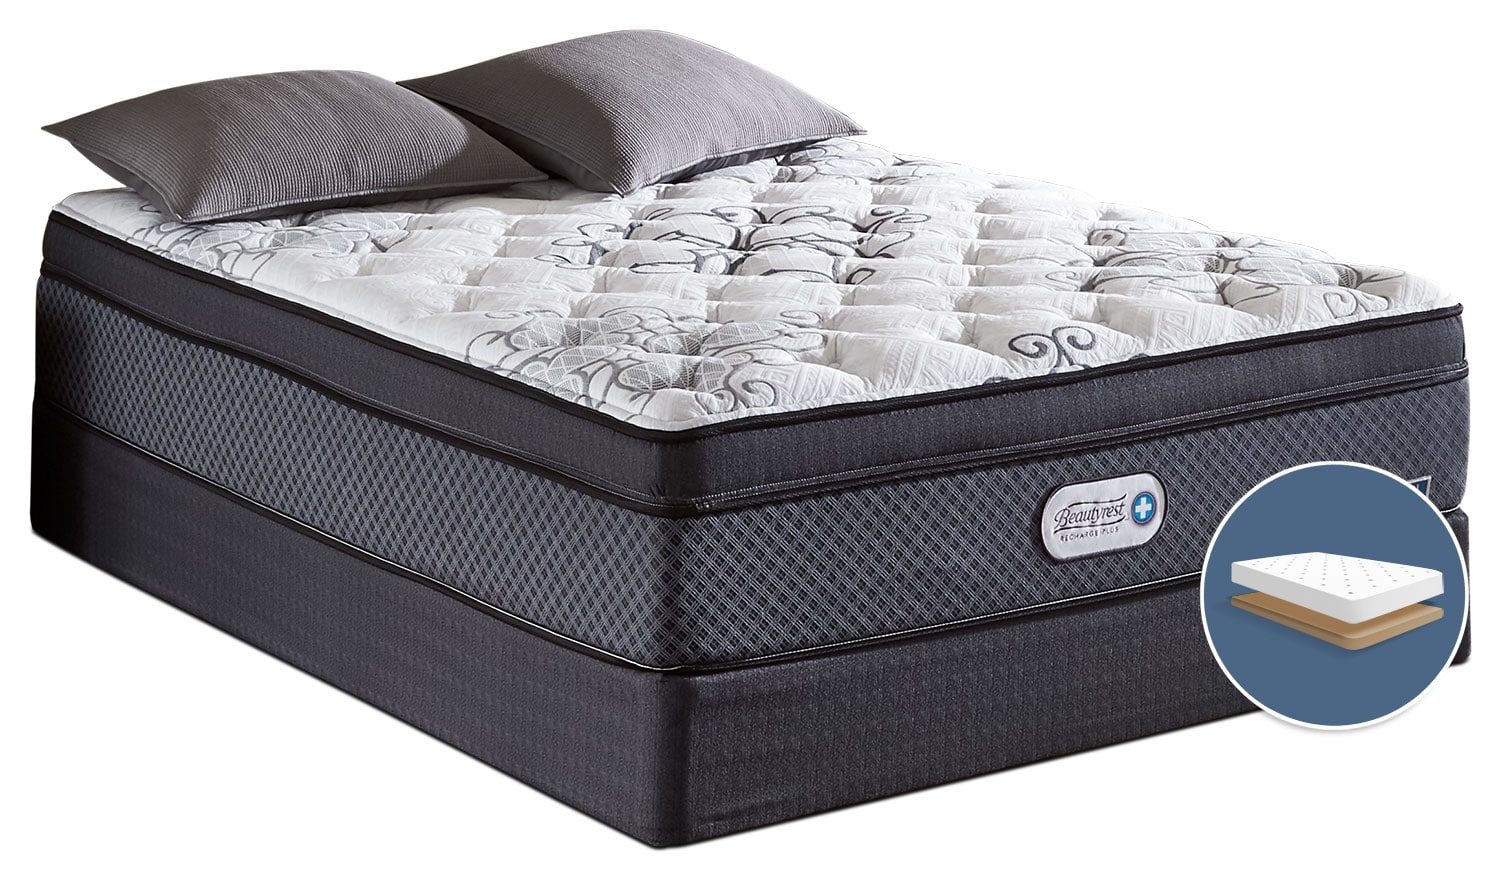 Beautyrest Recharge Covington Euro-Top Luxury Firm Low-Profile Full Mattress Set